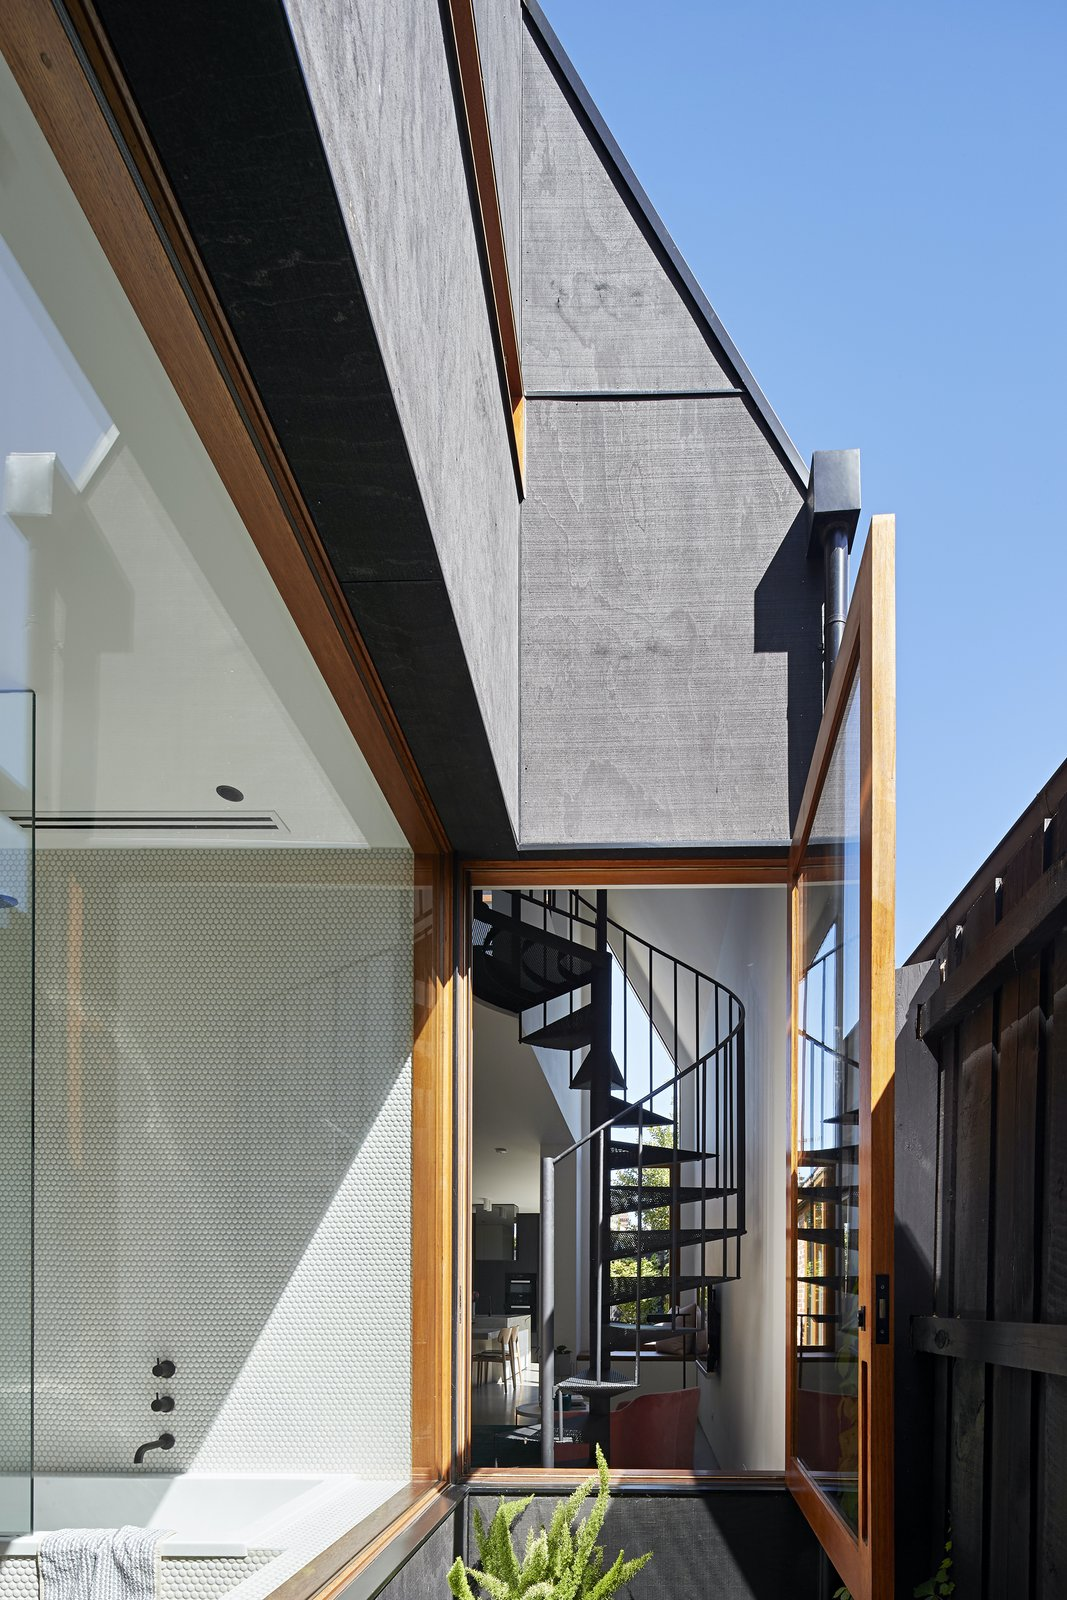 Internal courtyard at Charles St by Lande Architects.